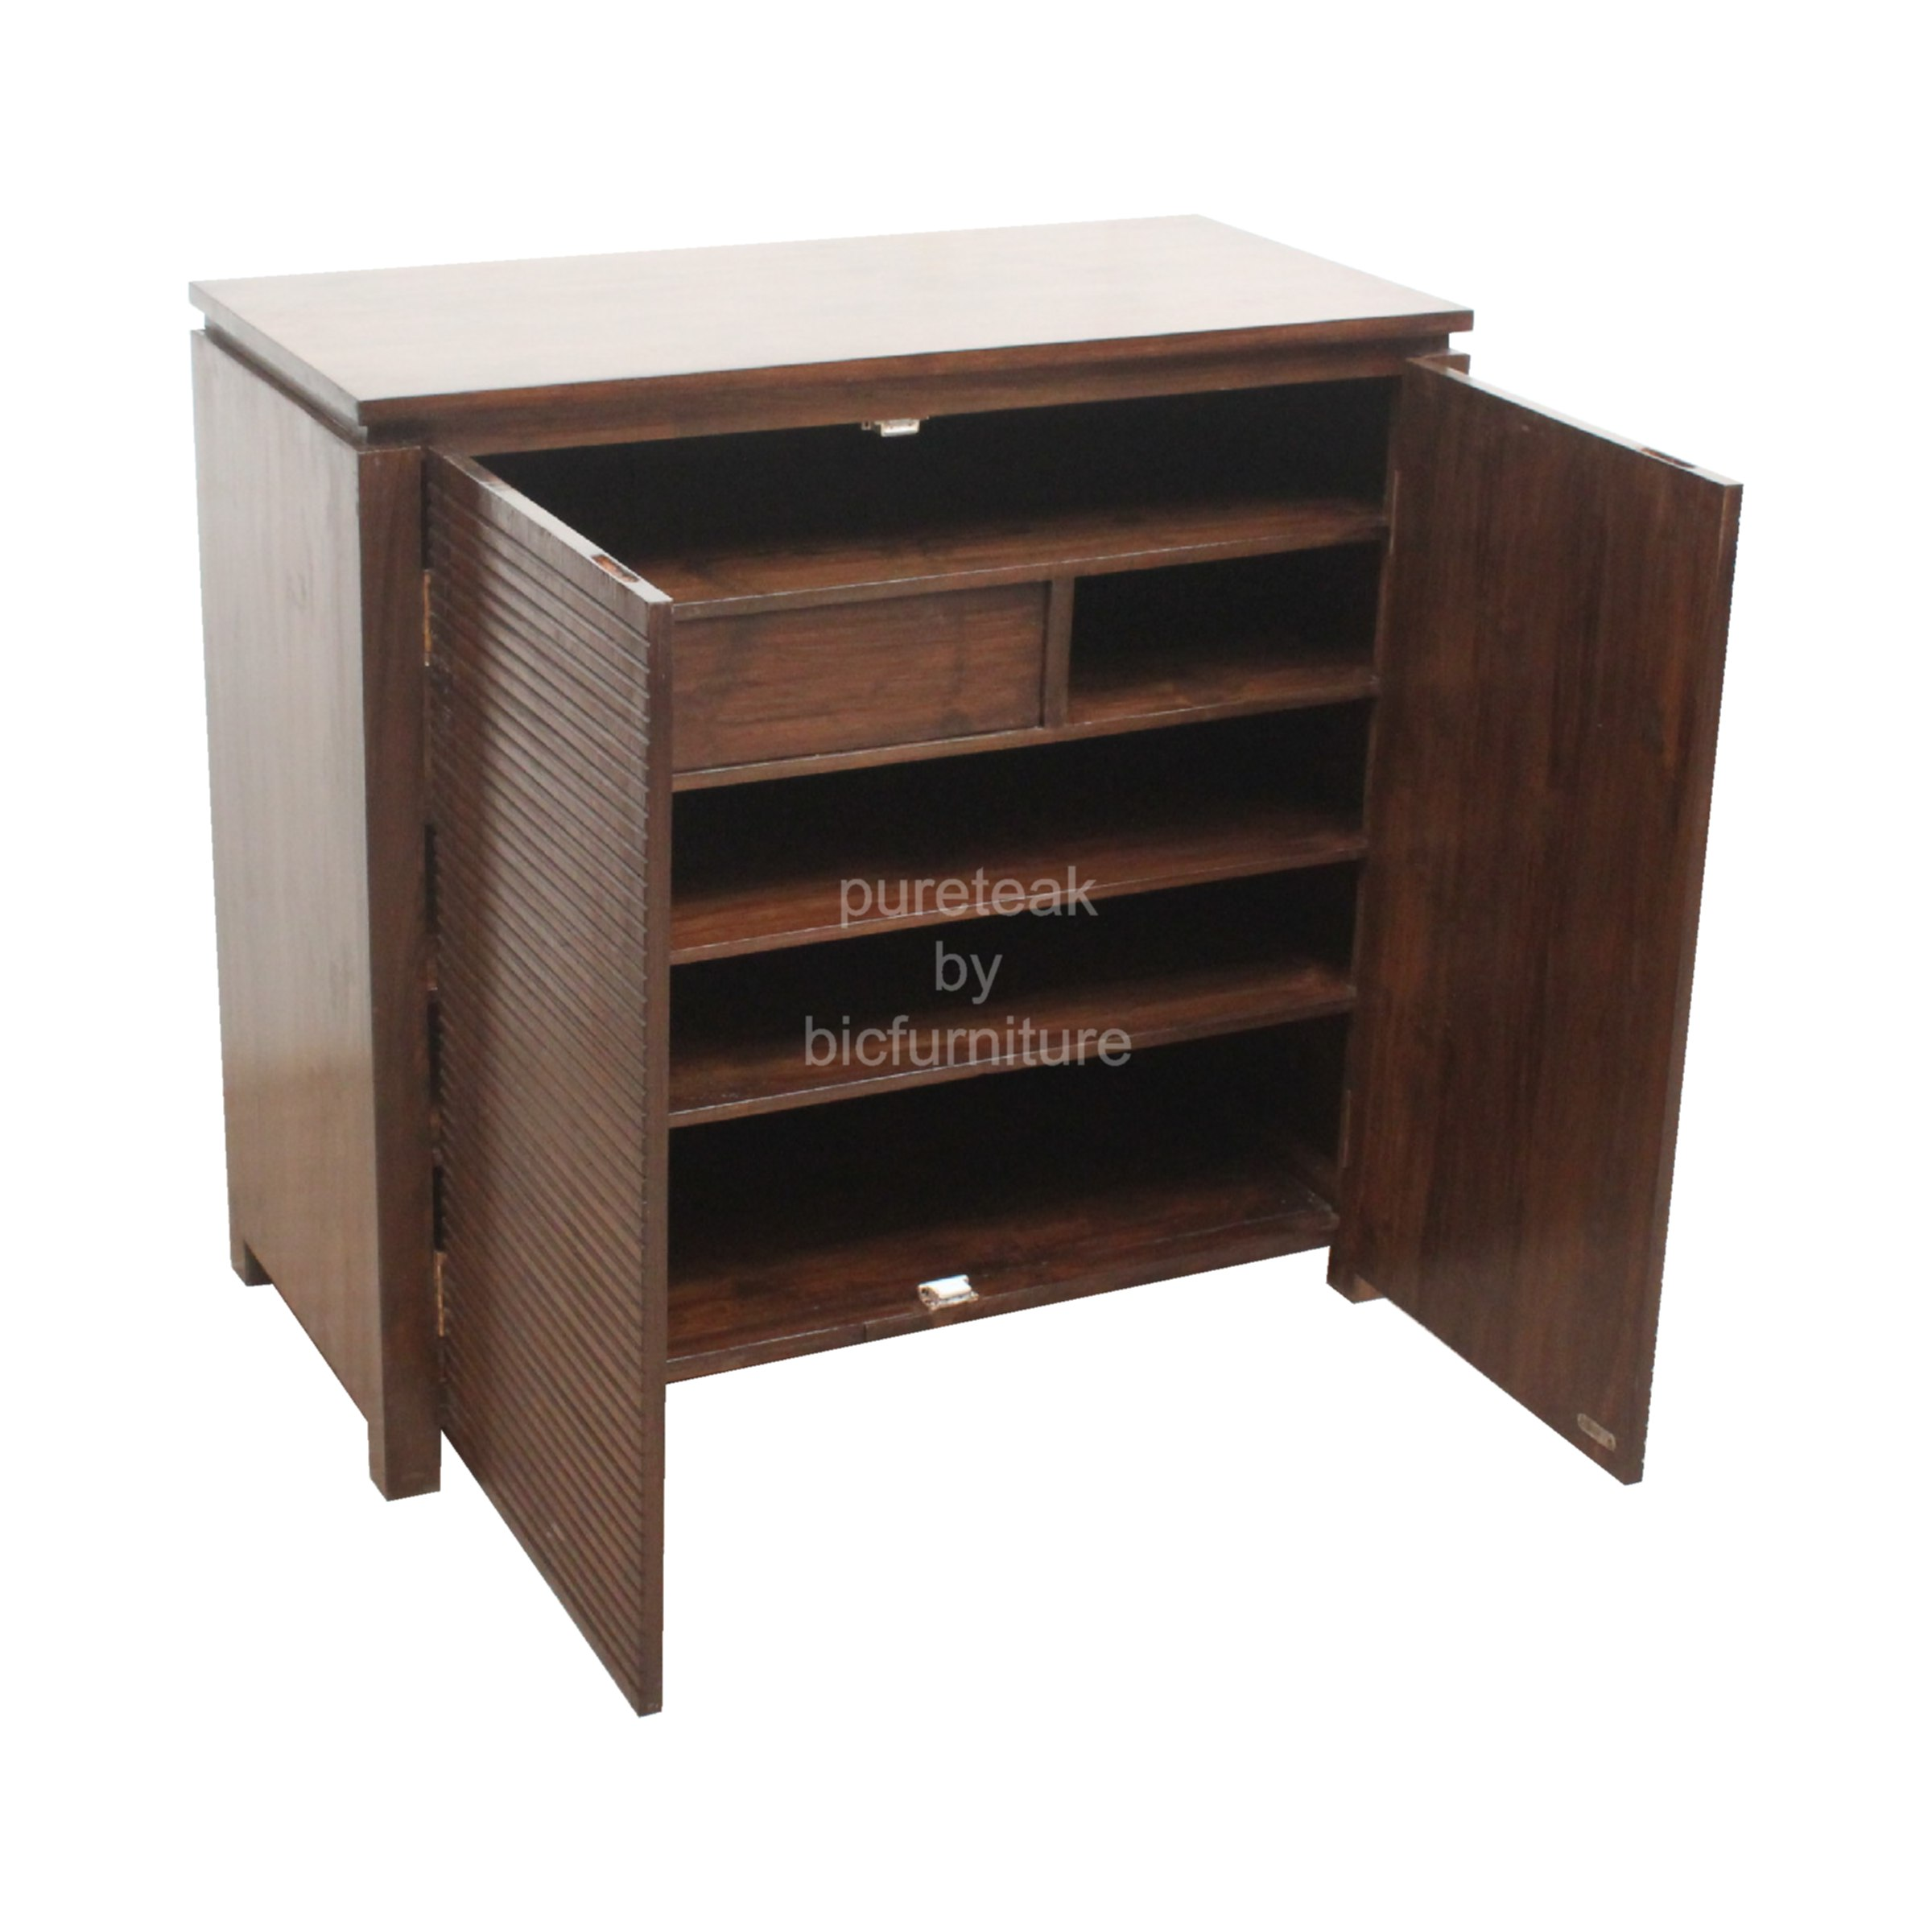 Superb img of door solid wood shoe rack with #654739 color and 2400x2400 pixels